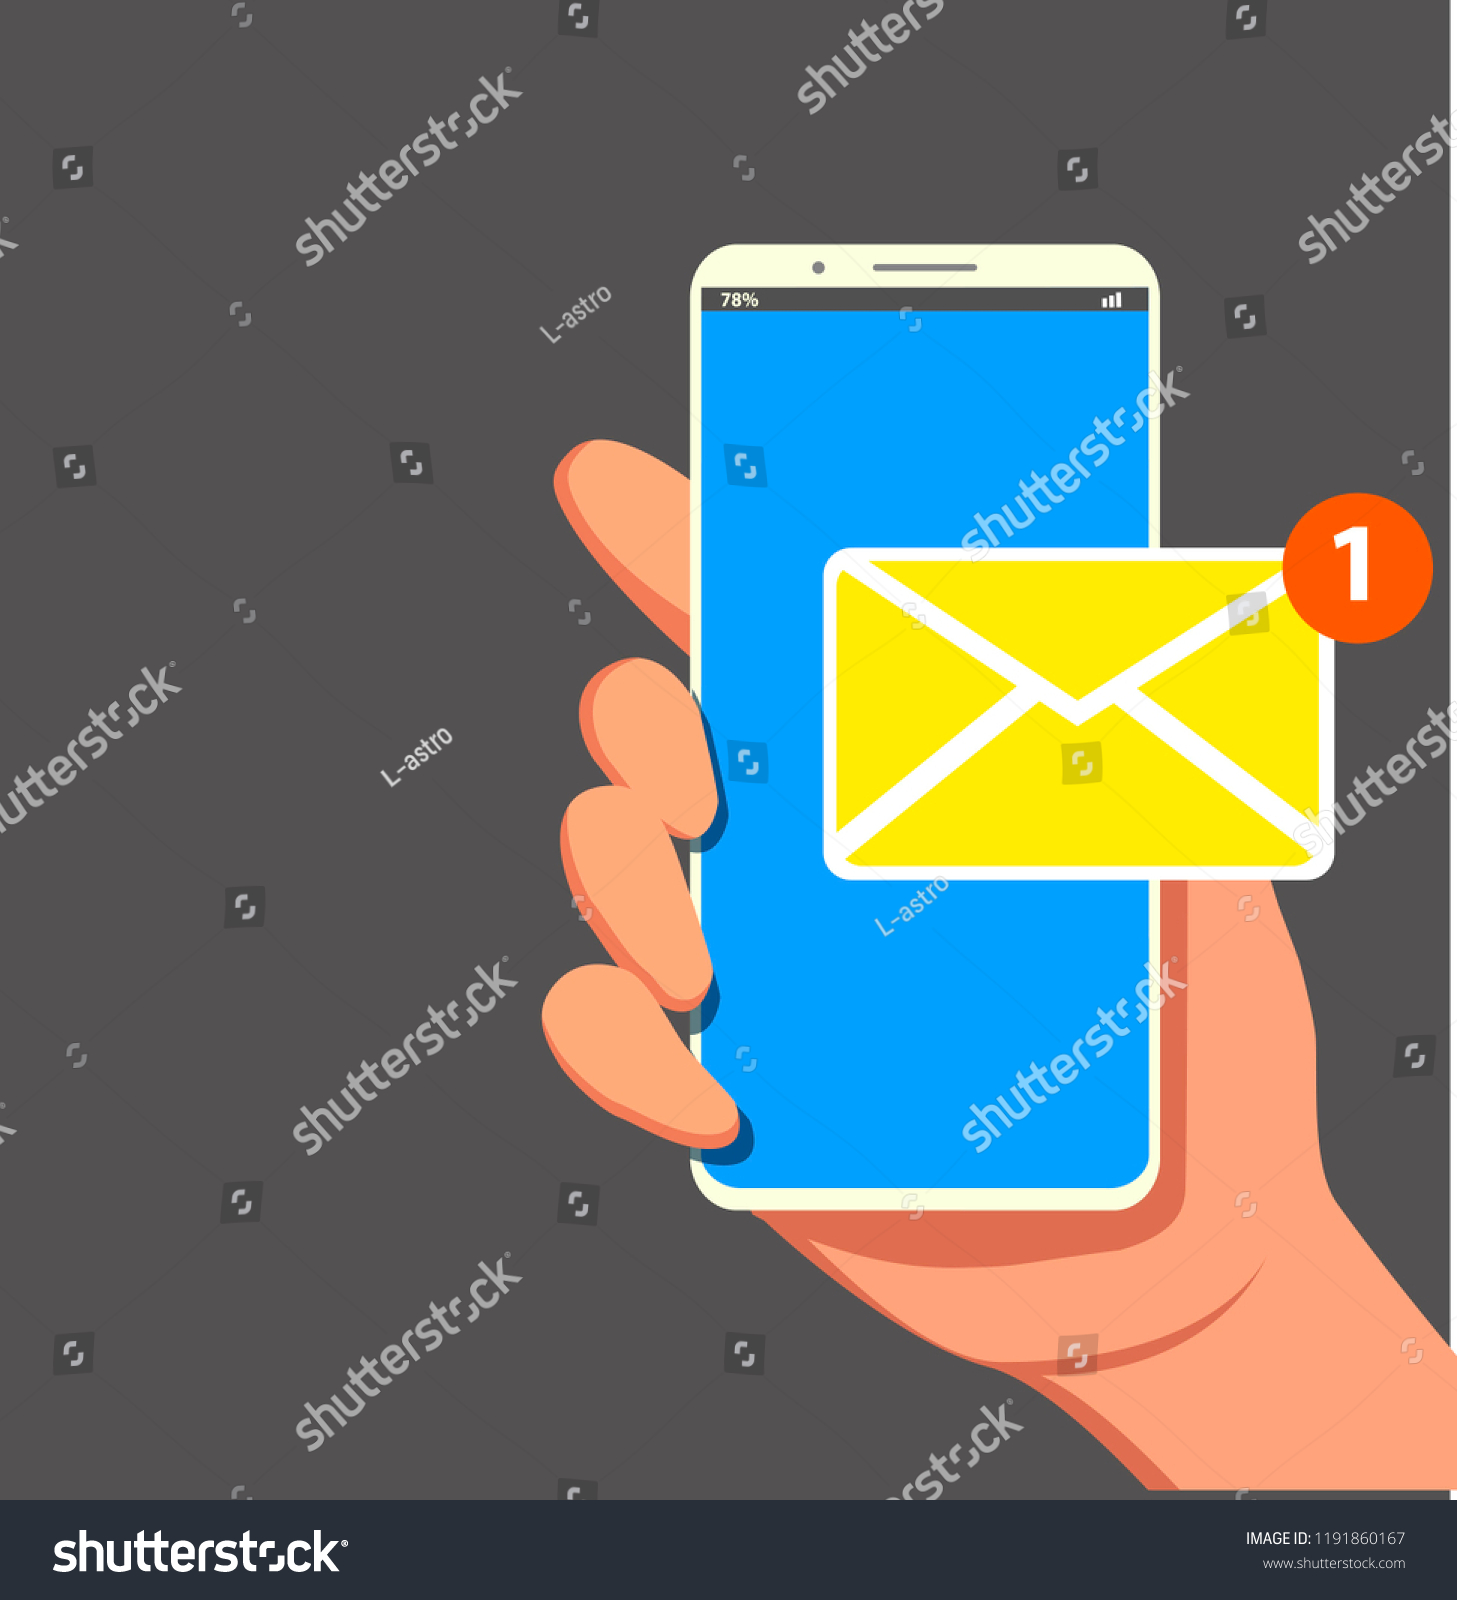 How To Read Cellphones Schematic Diagrams New Email Notification On Mobile Phone Stock Vector Royalty Free Smartphone Screen With Unread E Mail Message